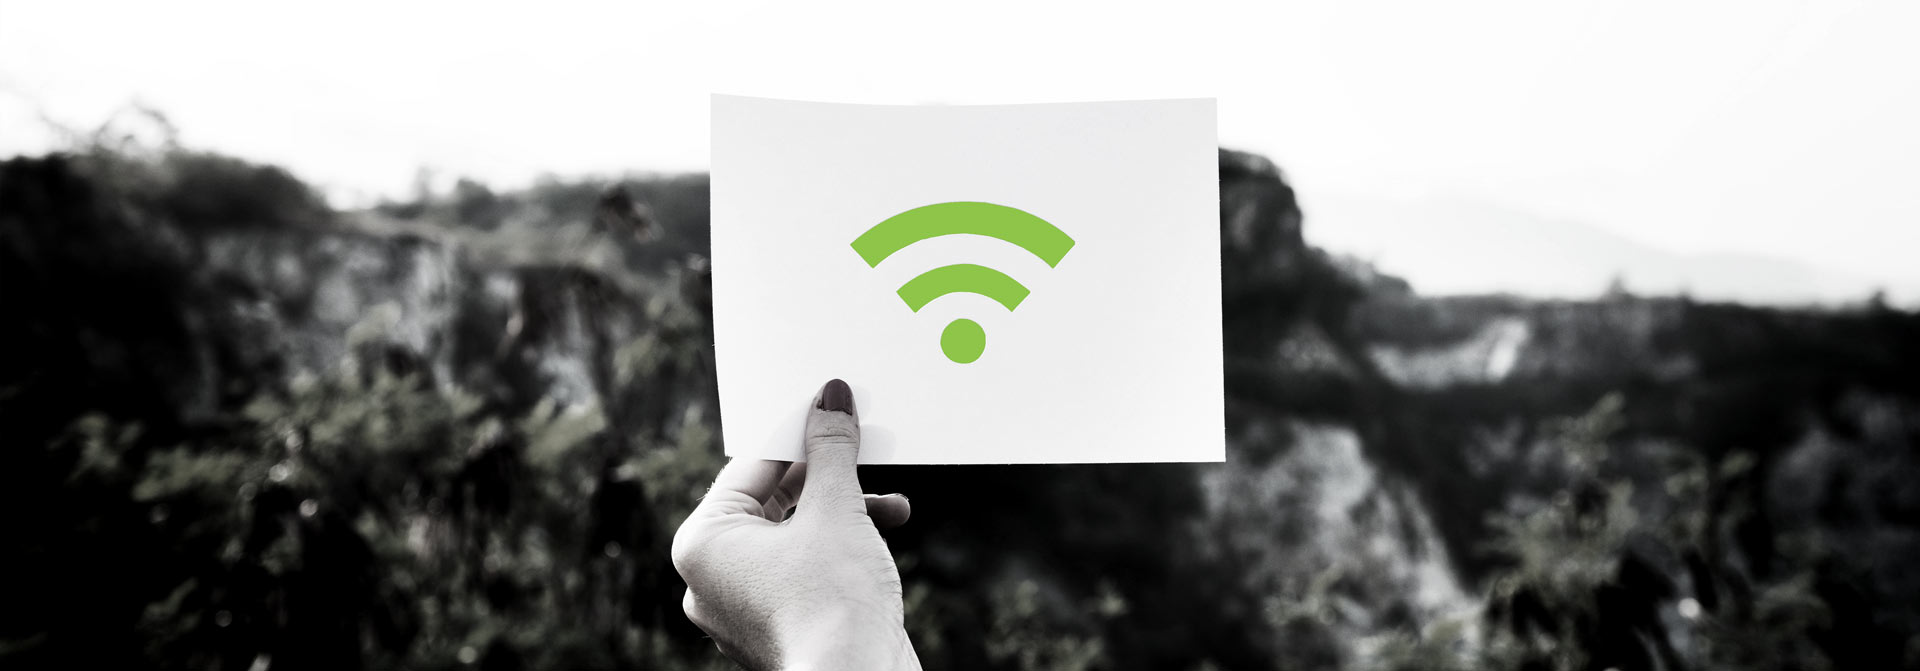 Card with Wifi Signal Logo